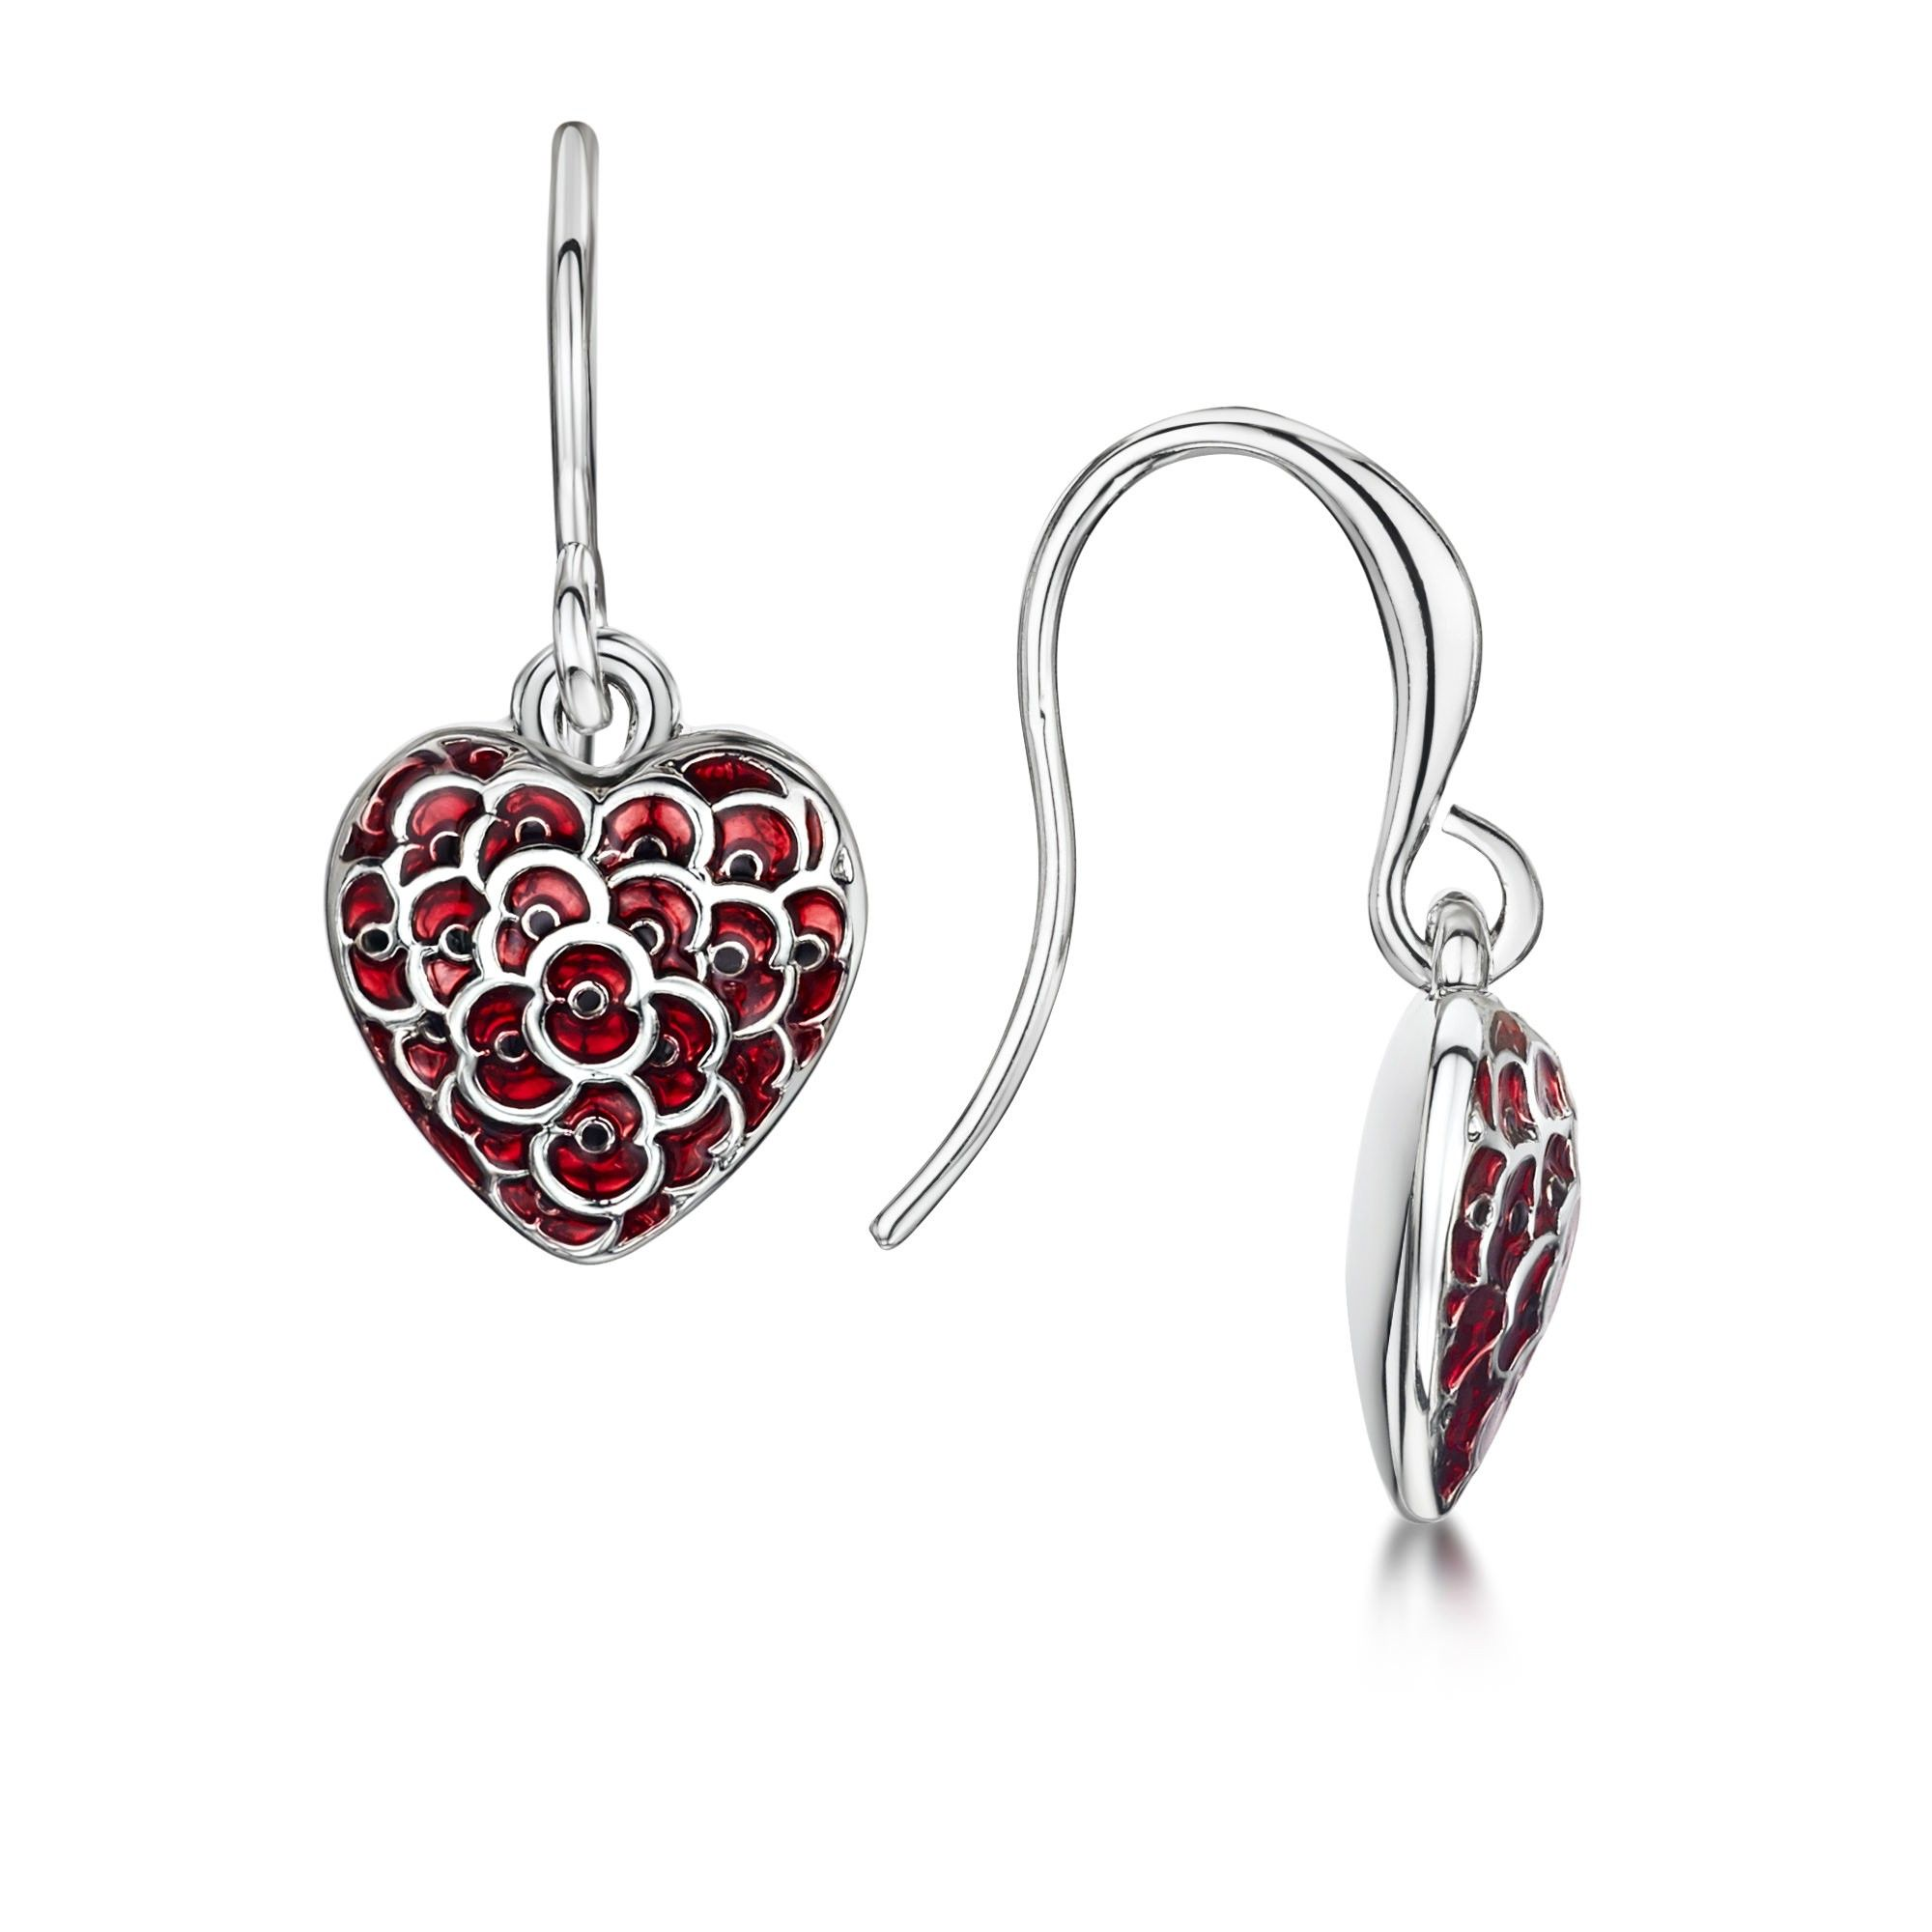 The Official RBL 'Heart of London' Poppy Drop Earrings